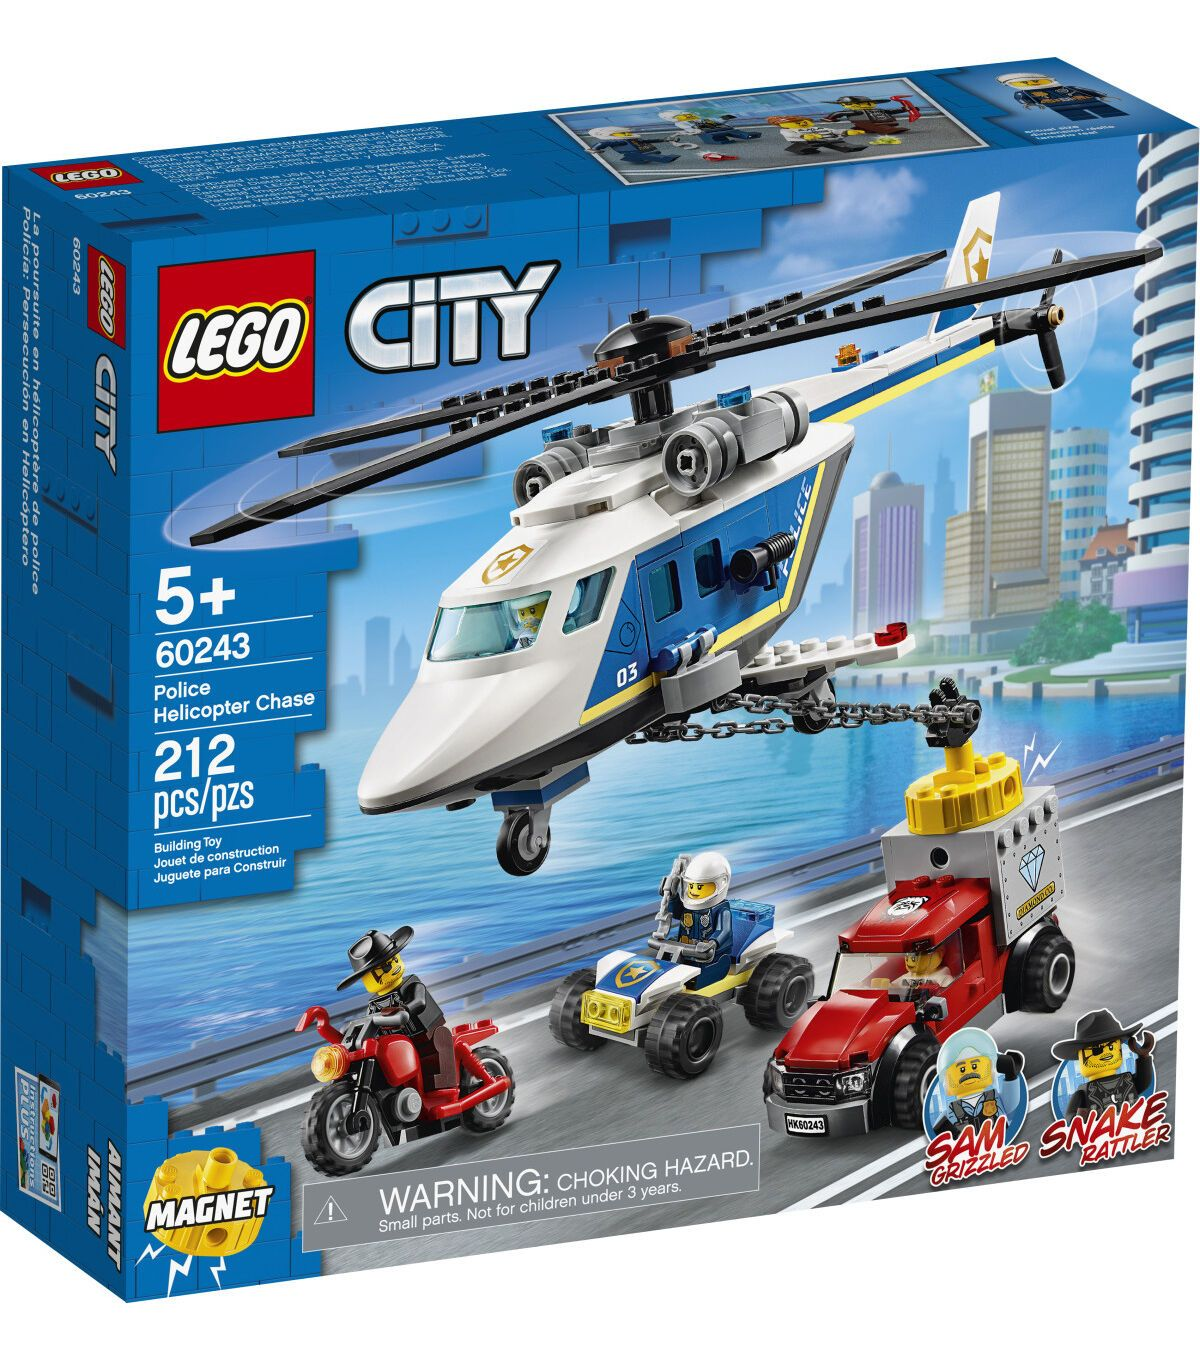 Lego City Police Helicopter Chase 60243 Joann In 2020 Lego City Lego City Police Lego City Sets